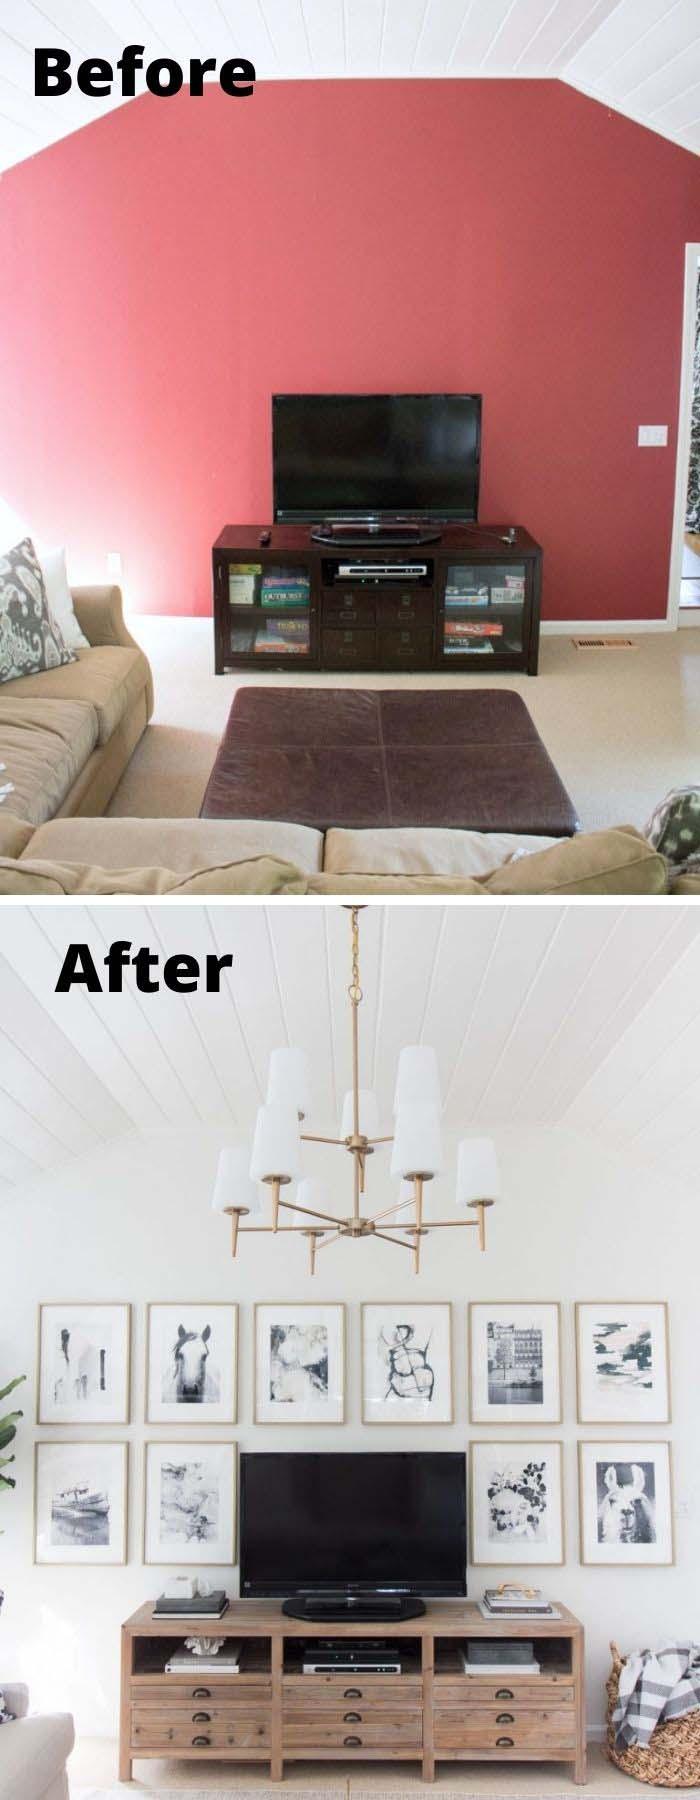 Before and After Living Room Makeover #livingroommakeovers #decorhomeideas